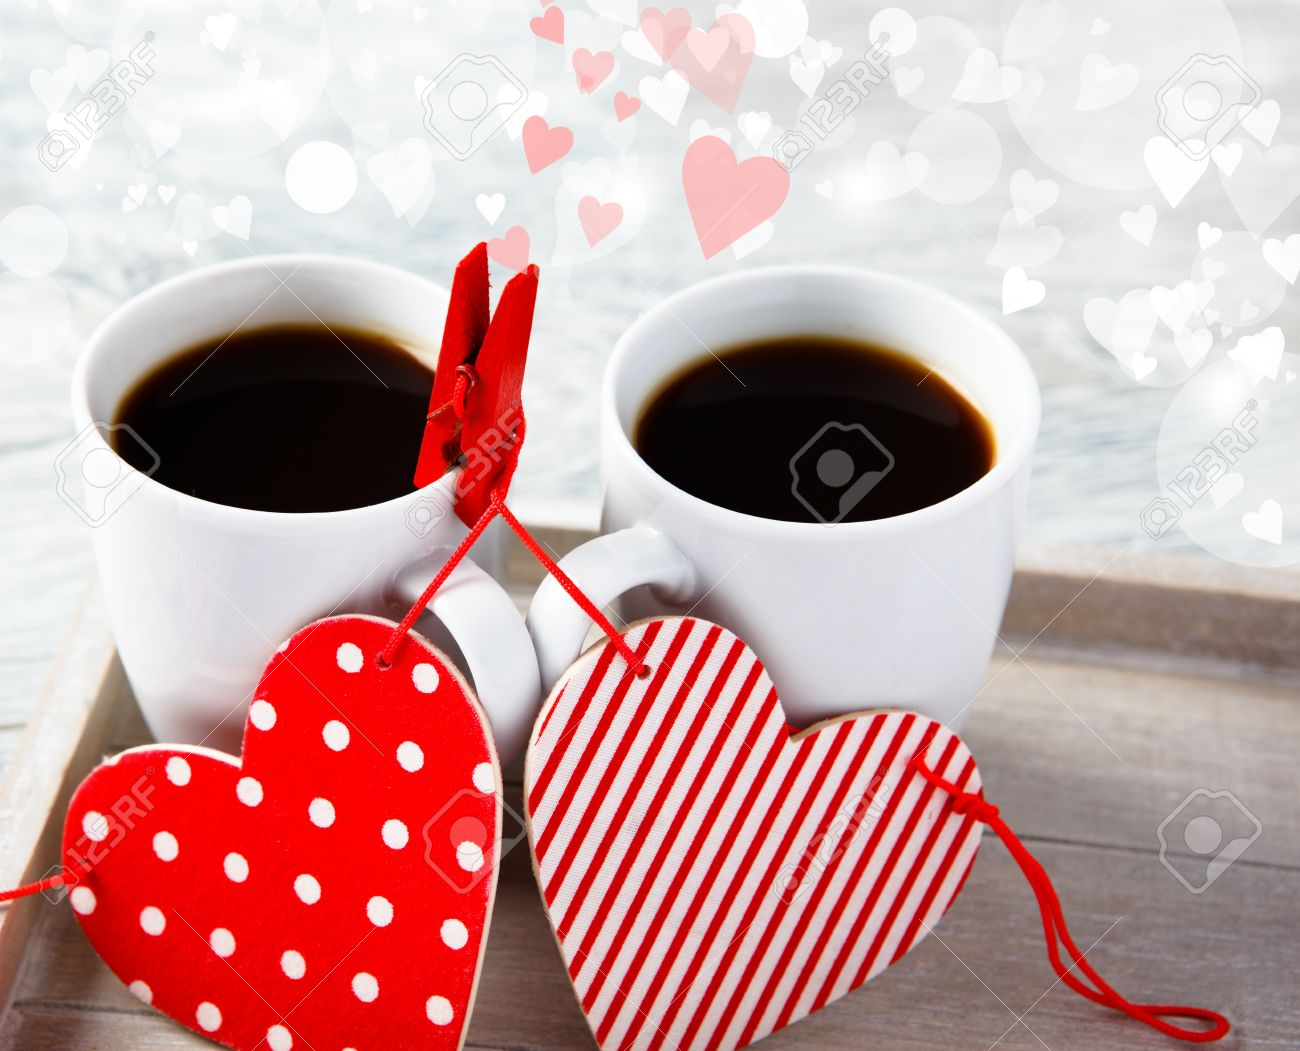 Morning Valentine Coffee With Two Hearts Pinned To The Cups Stock Photo    16931947